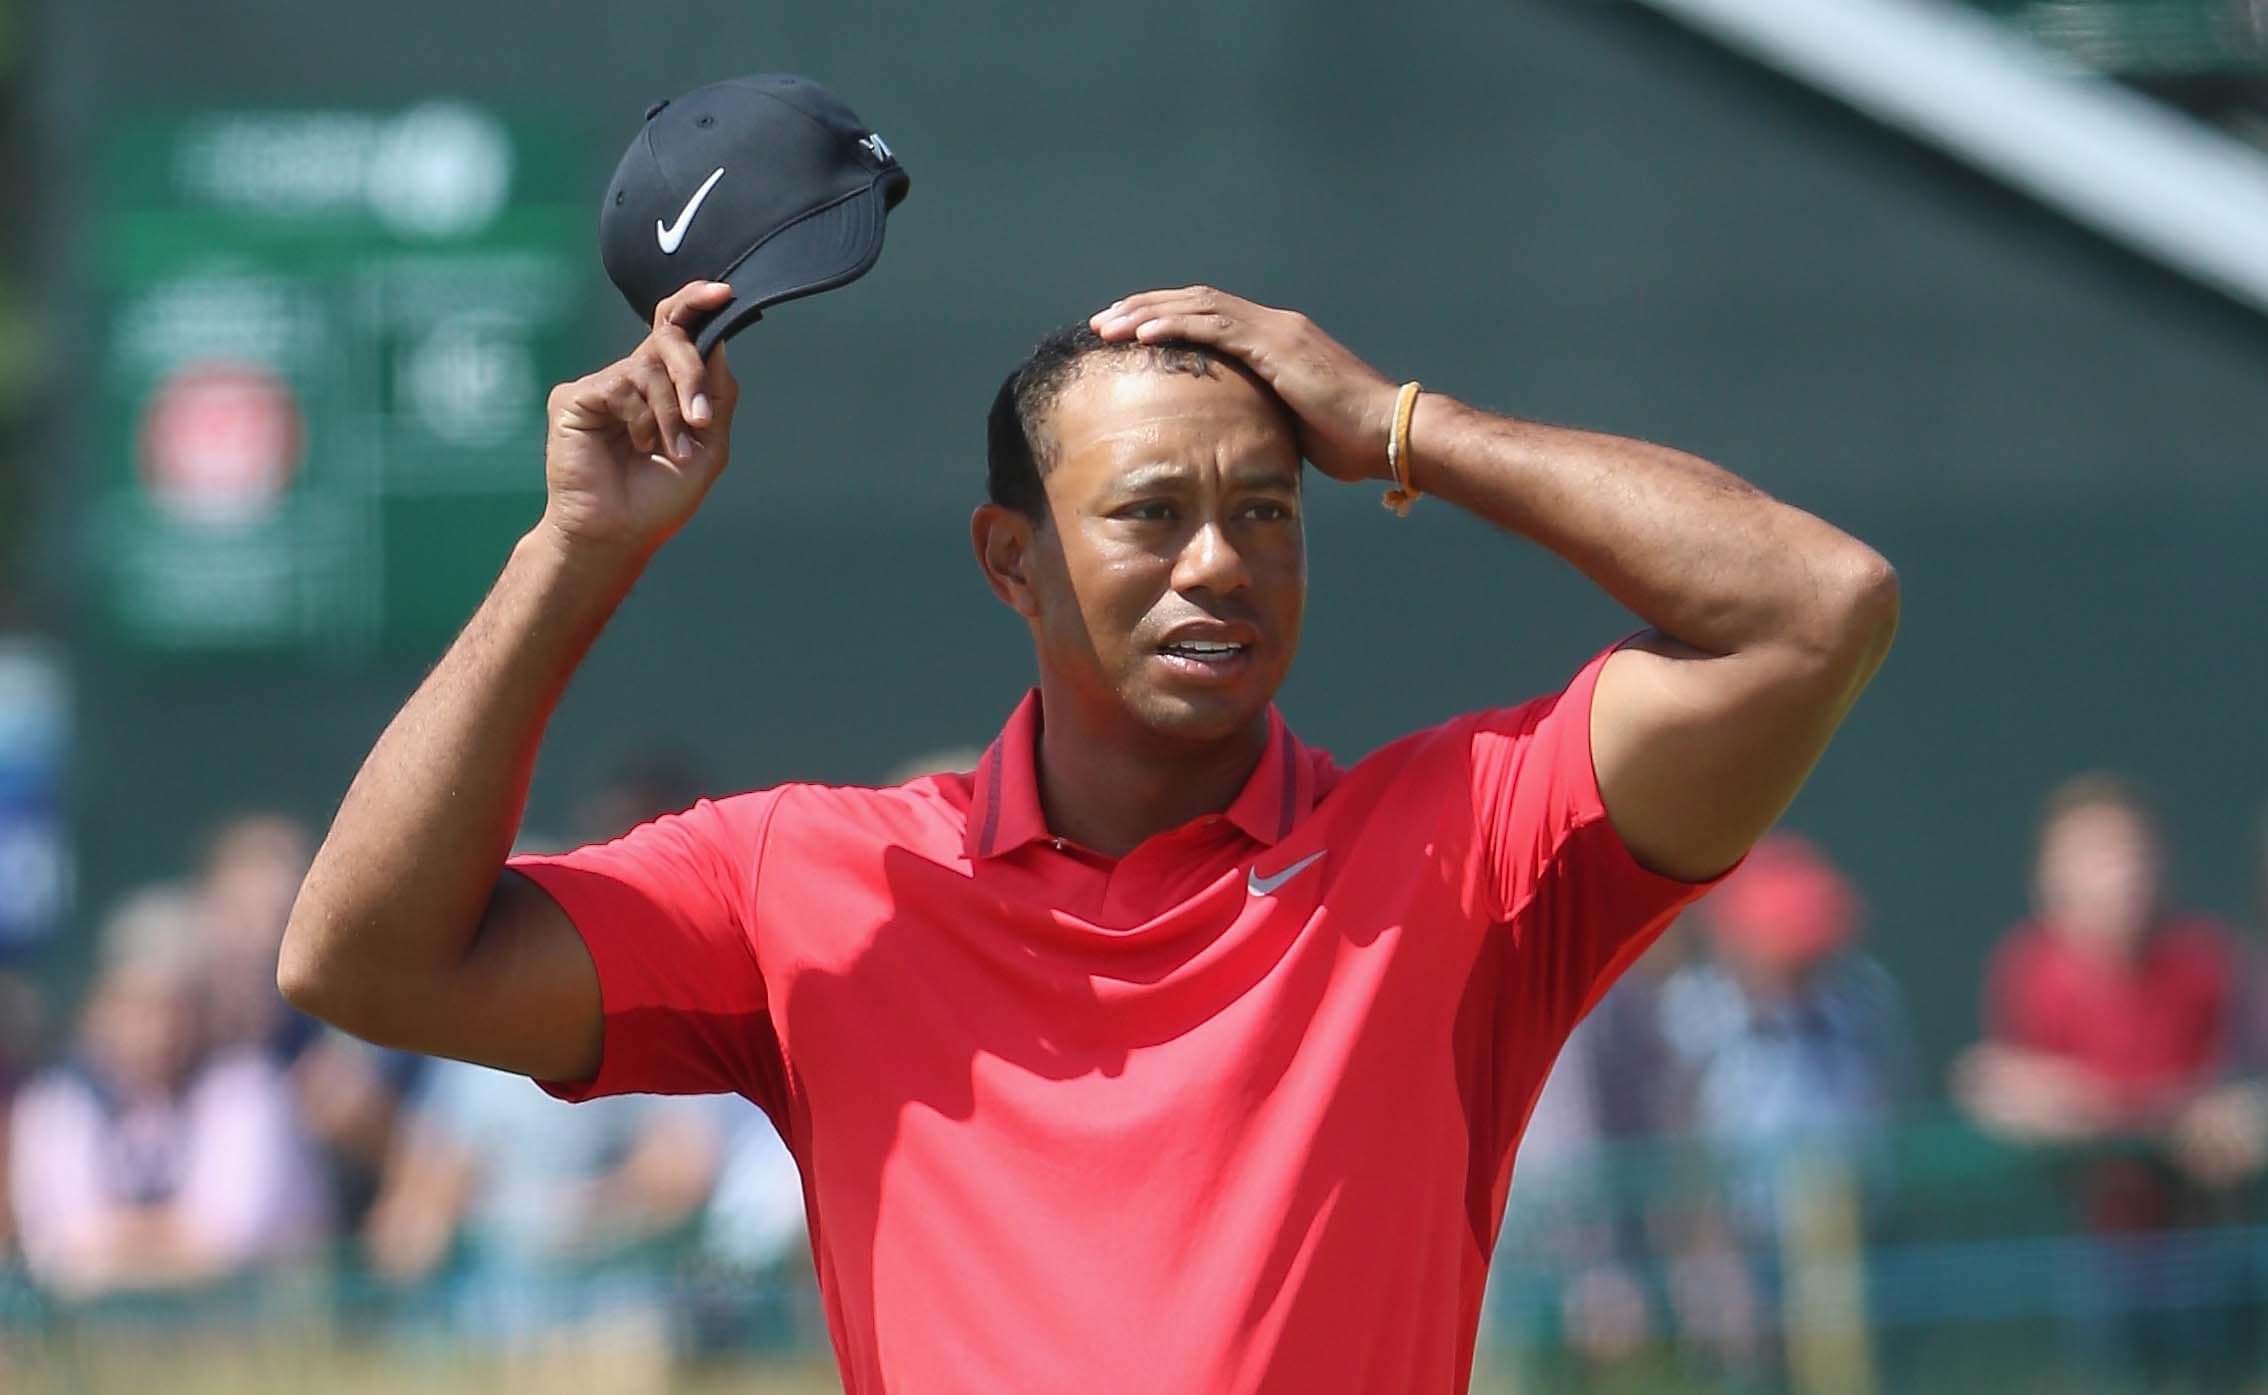 Tiger Woods dropping from the No. 1 ranking ... or